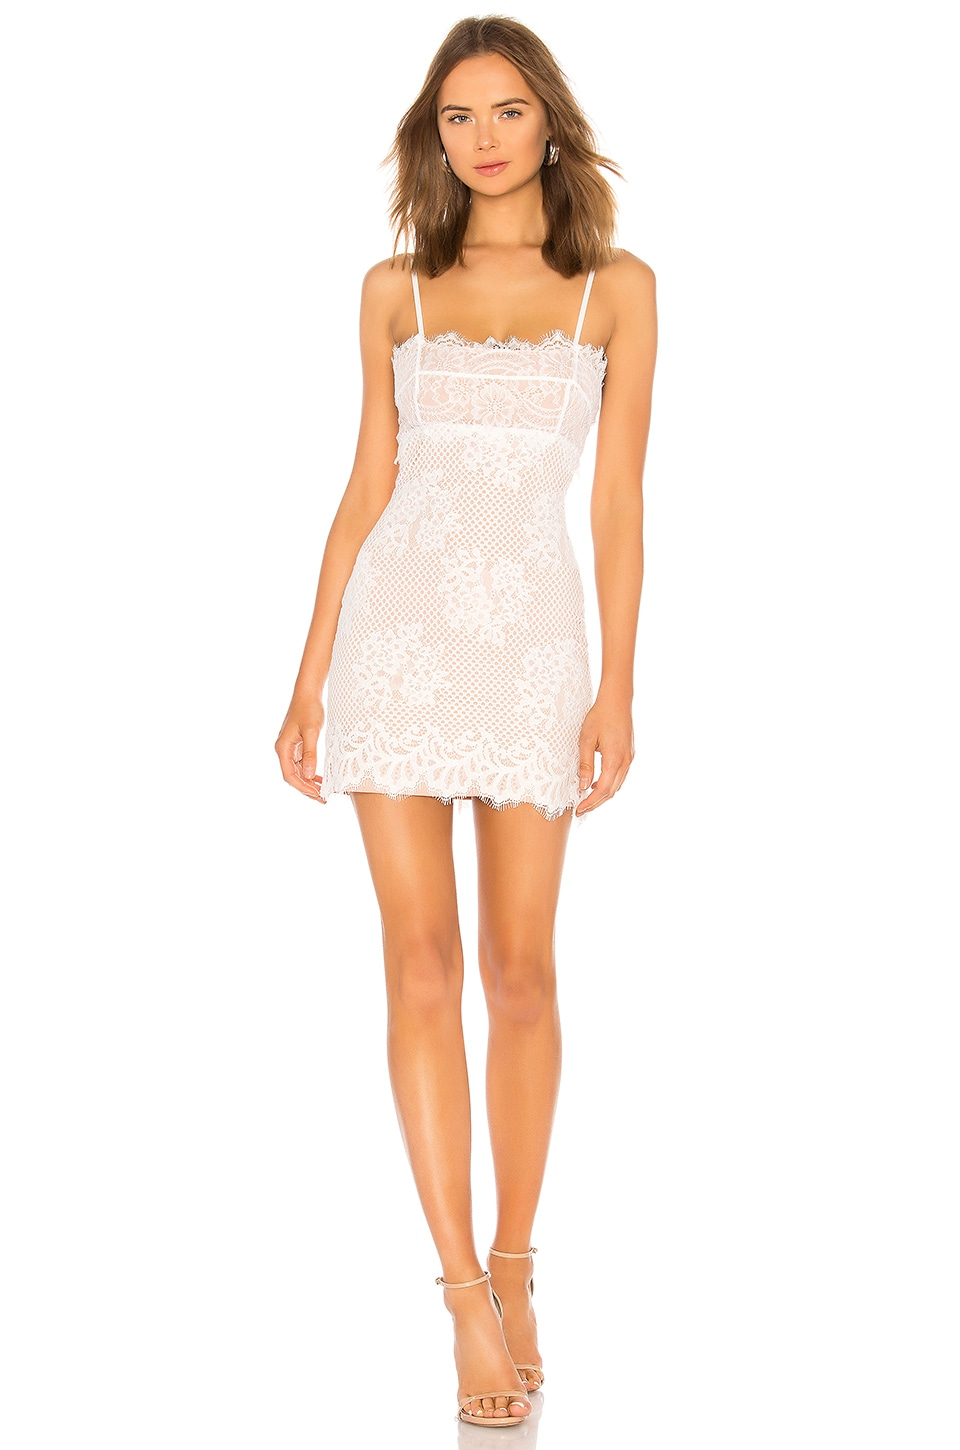 MAJORELLE Apollo Dress in Ivory